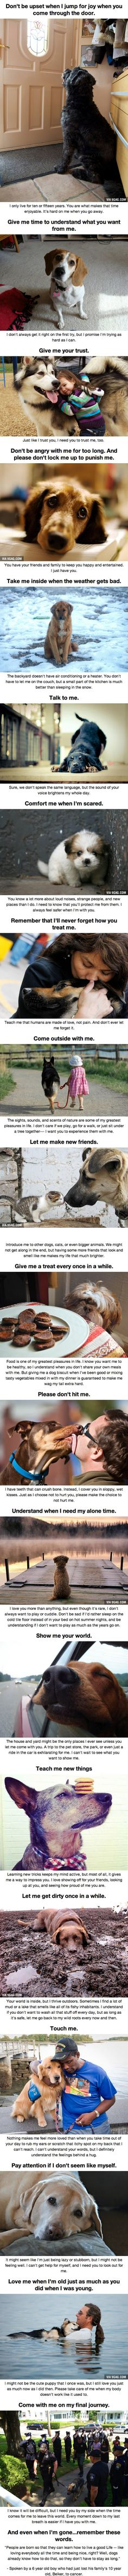 How to really love your dog.